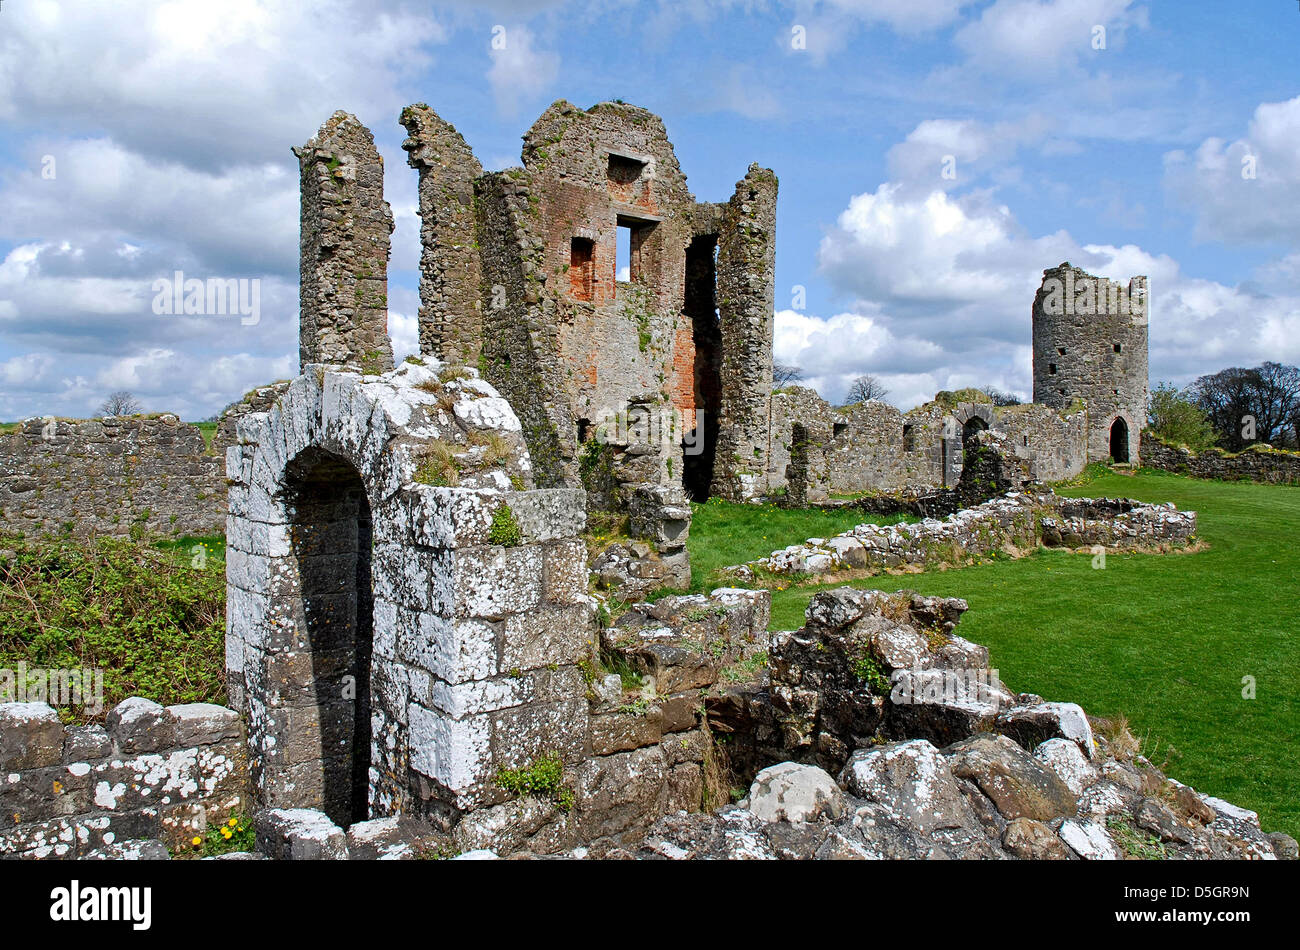 Ruins of 17thC, Century, Crom Castle, Upper Lough Erne, County Fermanagh, Northern Ireland - Stock Image